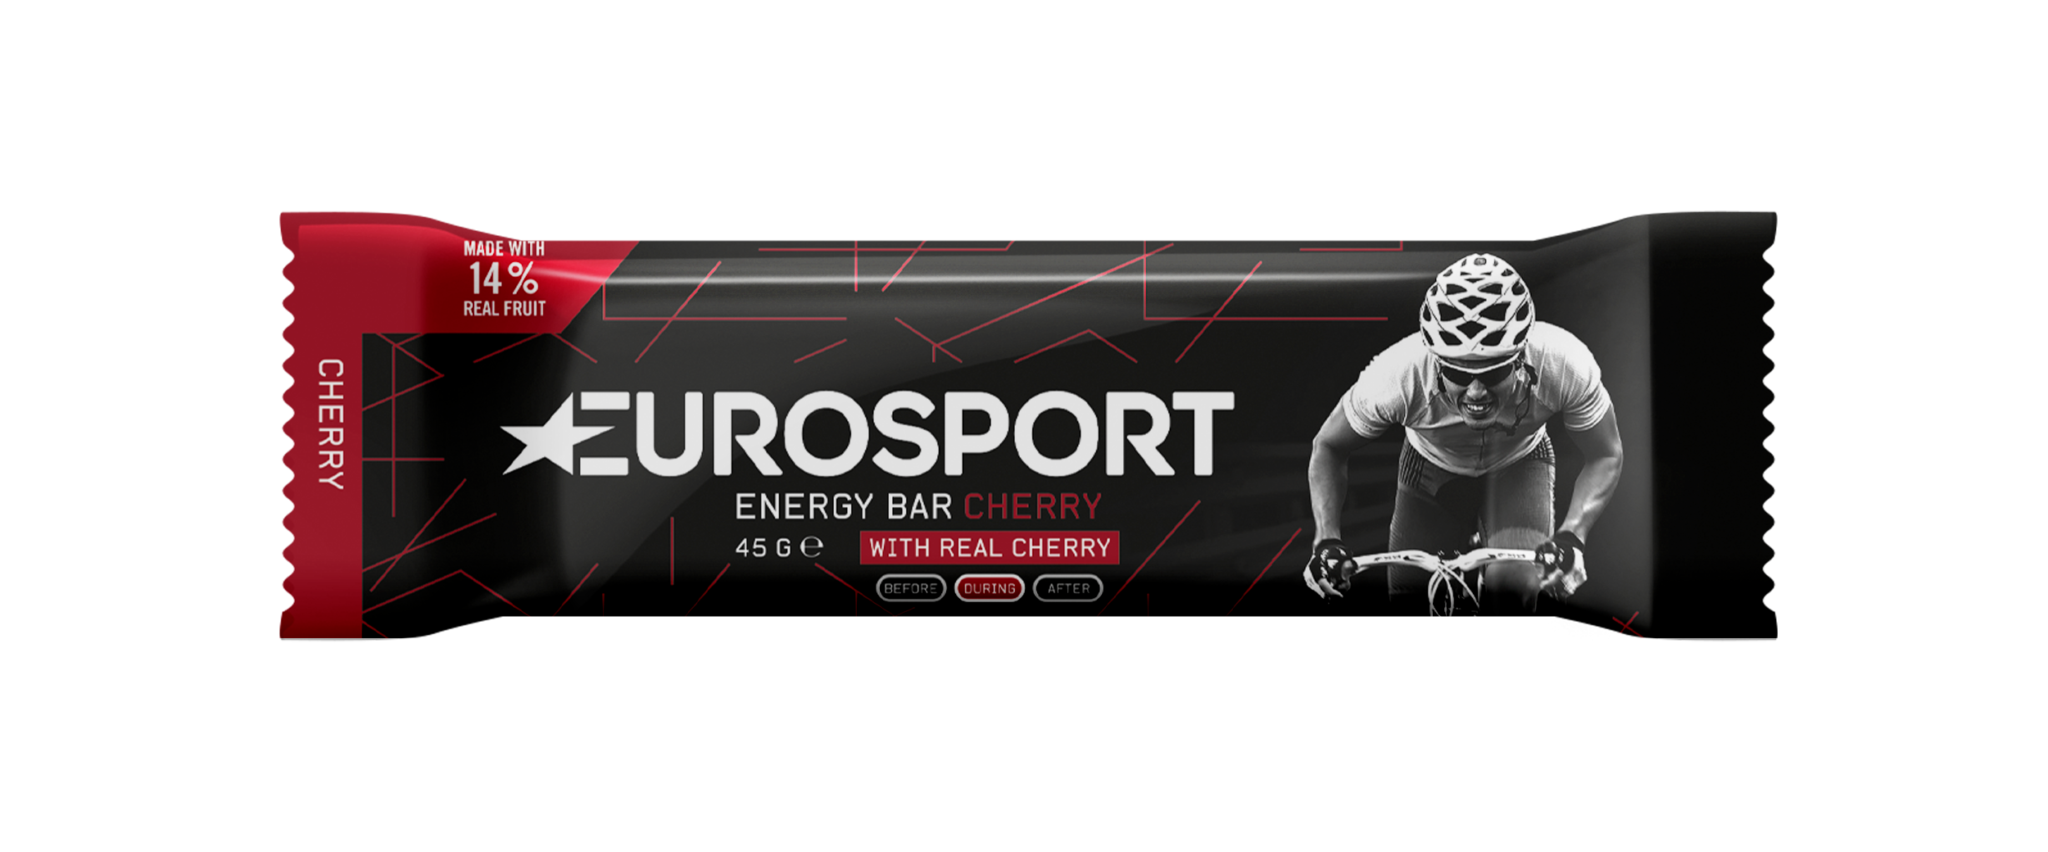 Eurosport - Energy Bar Cherry - Reep - 3D